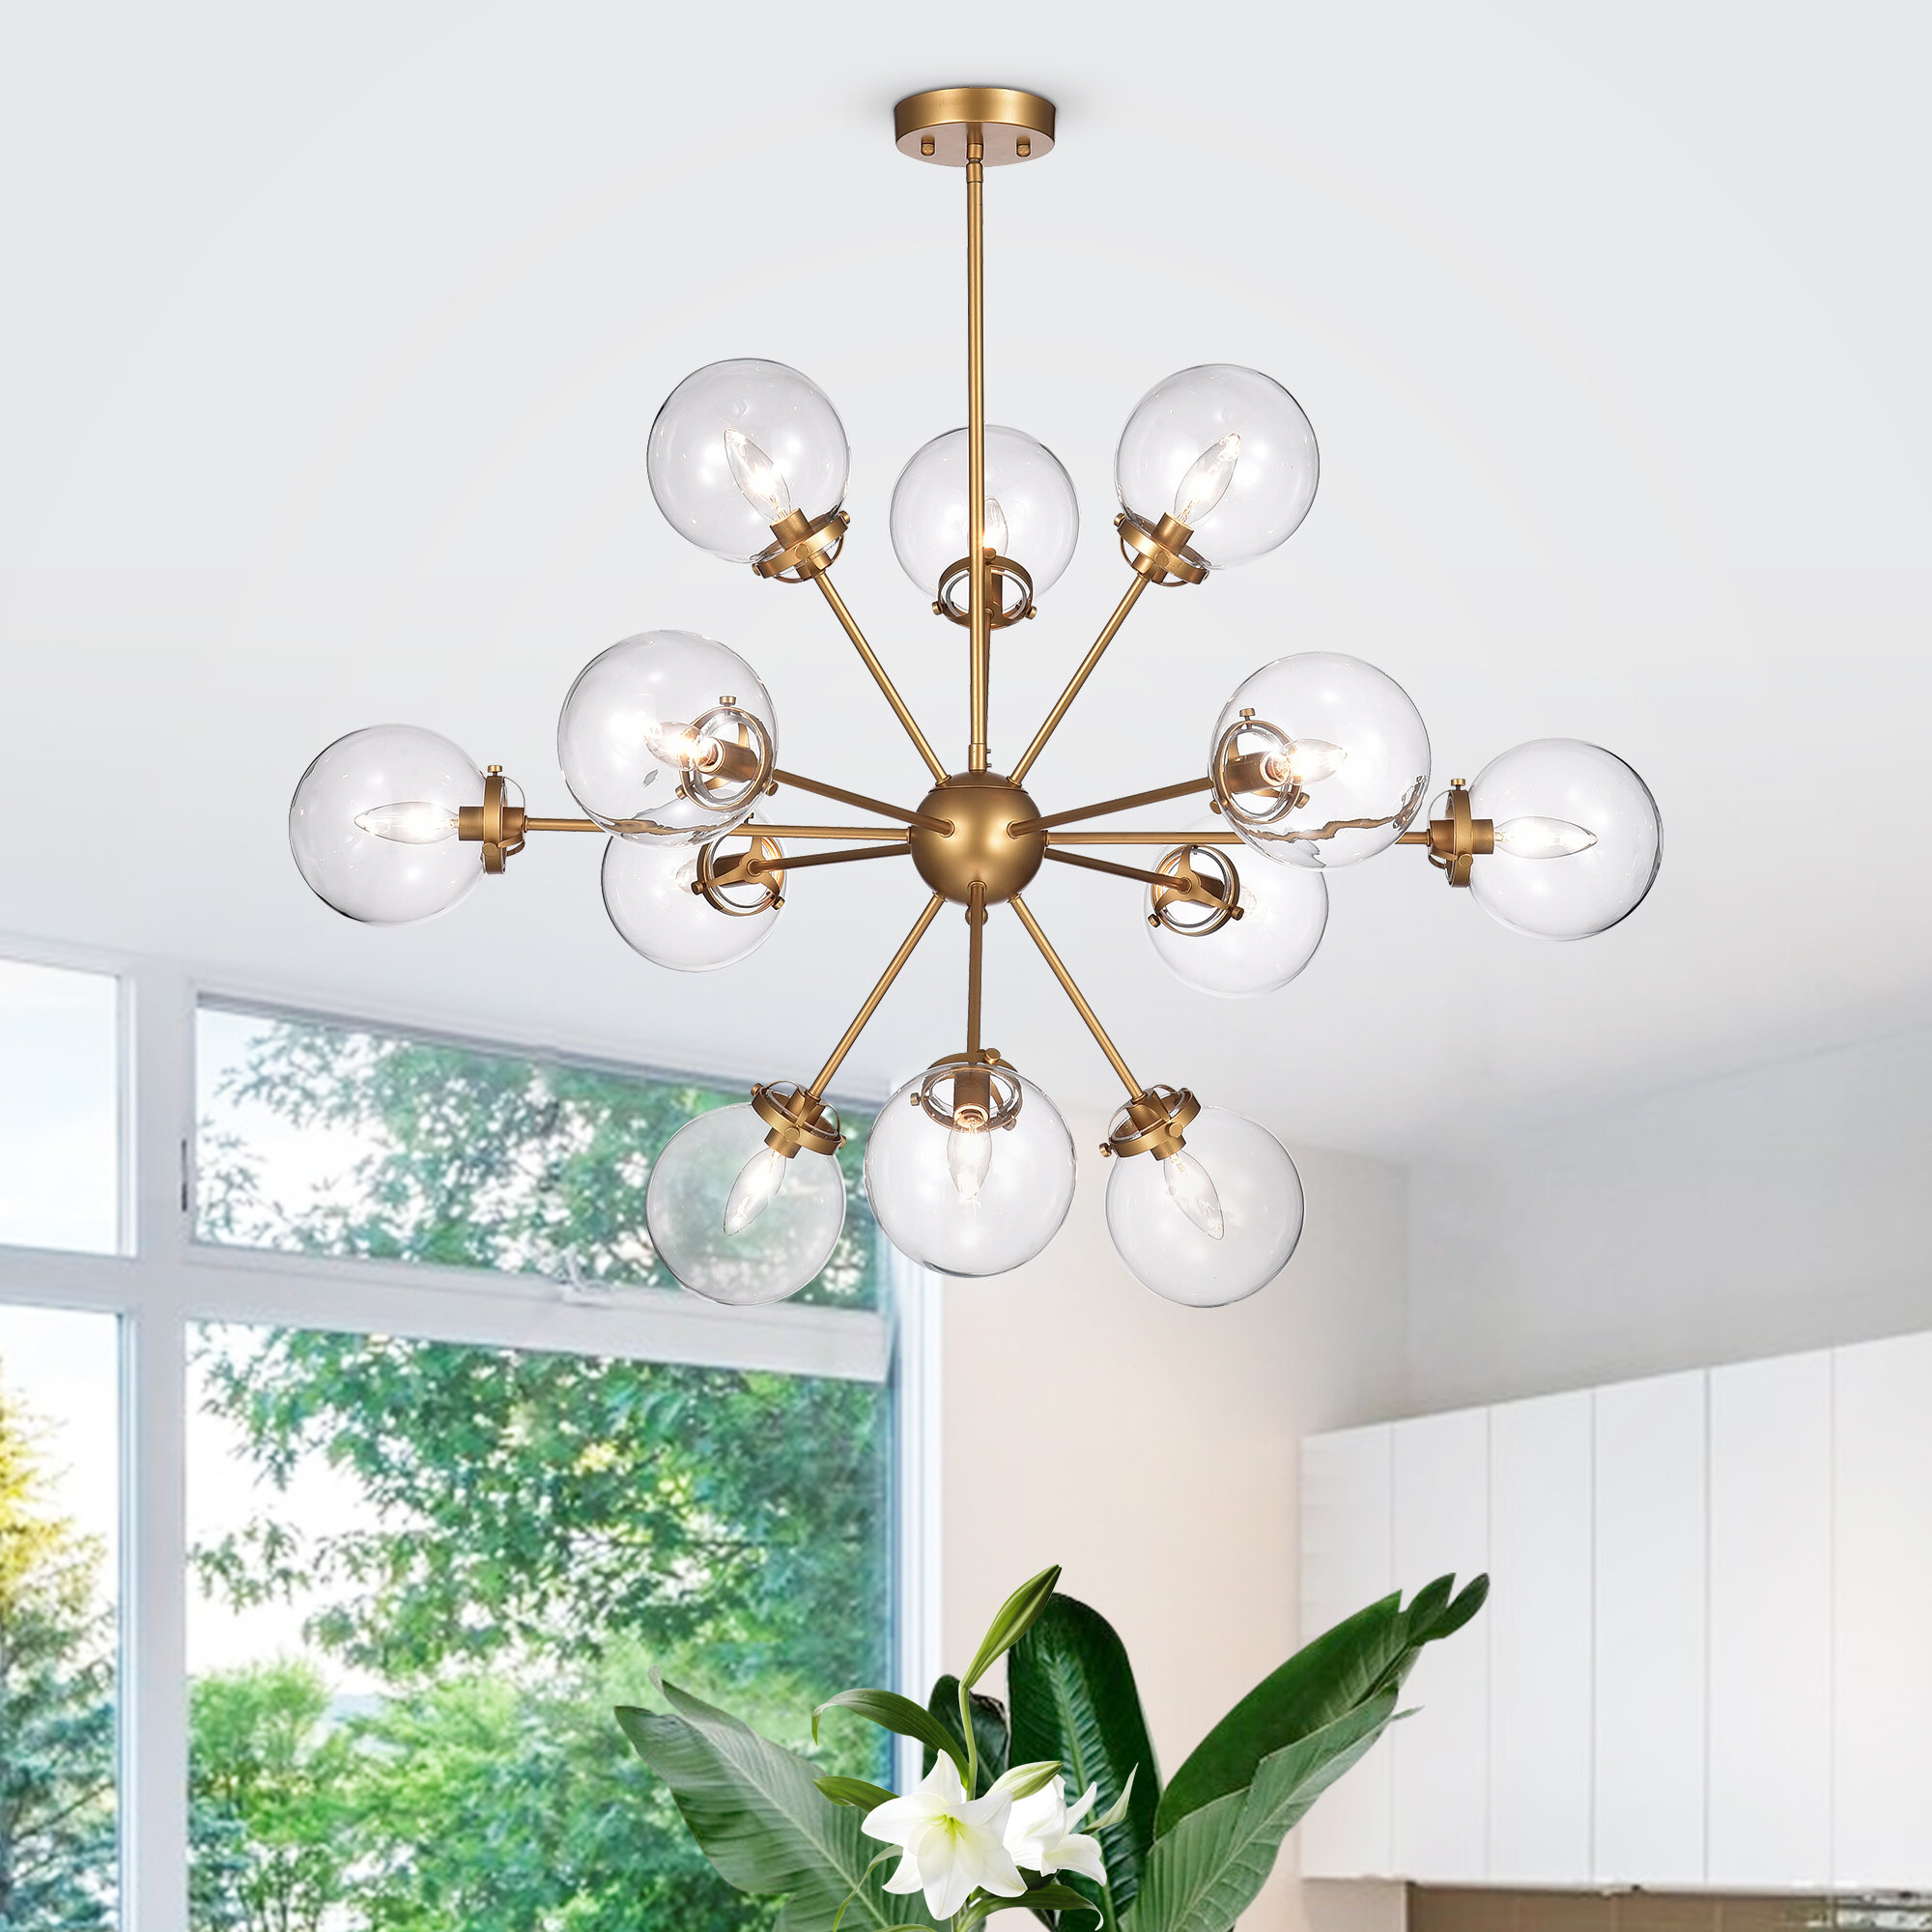 Popular Asher 12 Light Sputnik Chandeliers Intended For Natividad 12 Light Sputnik Chandelier (View 19 of 20)